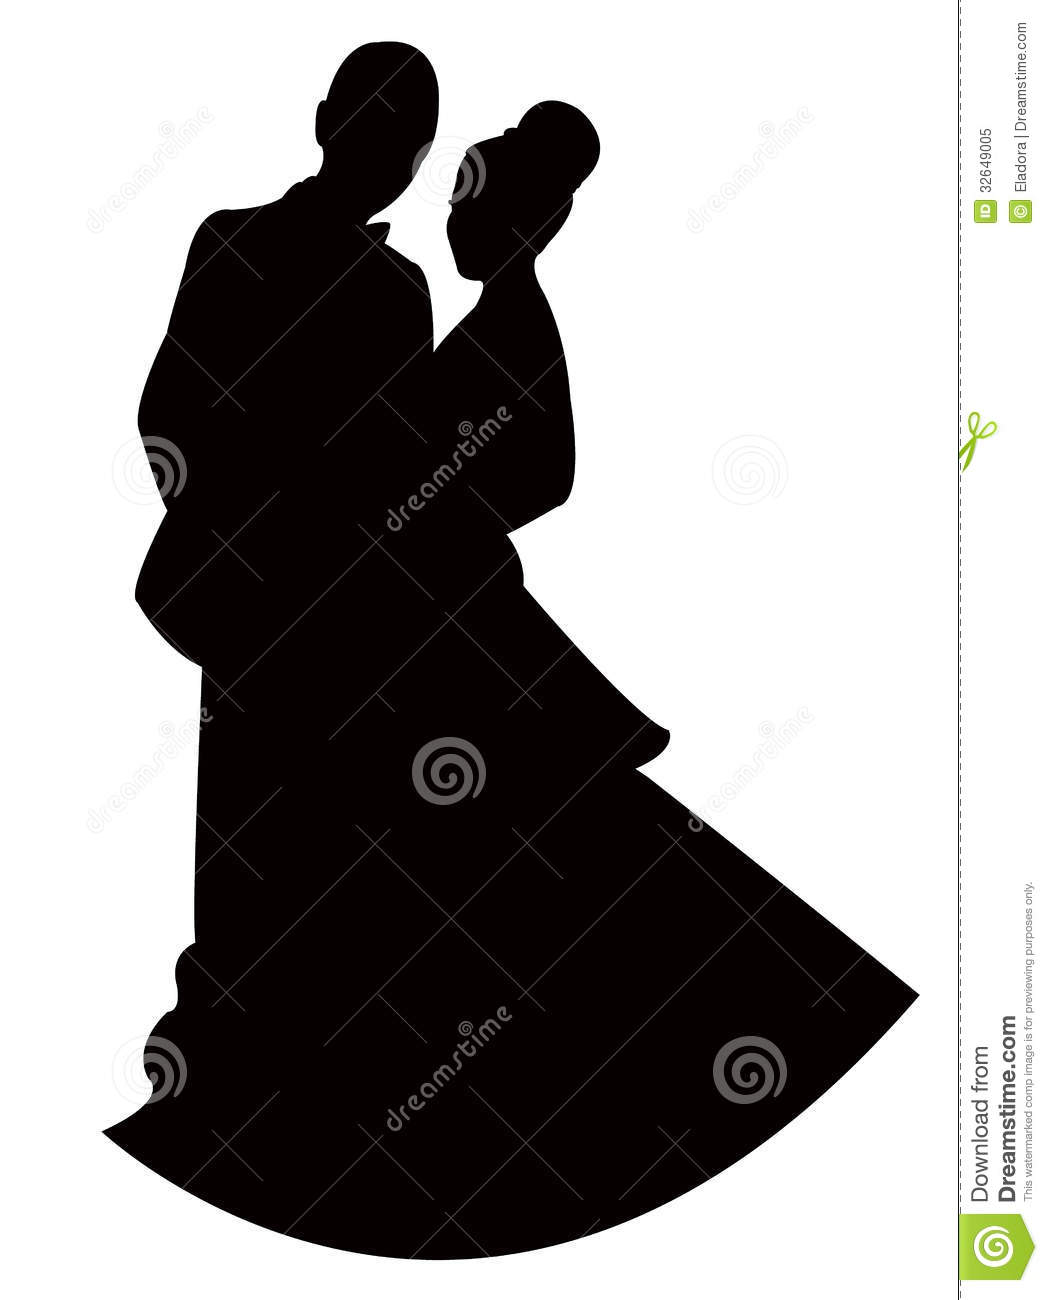 Vector Of A Couple Royalty Free Stock Photo